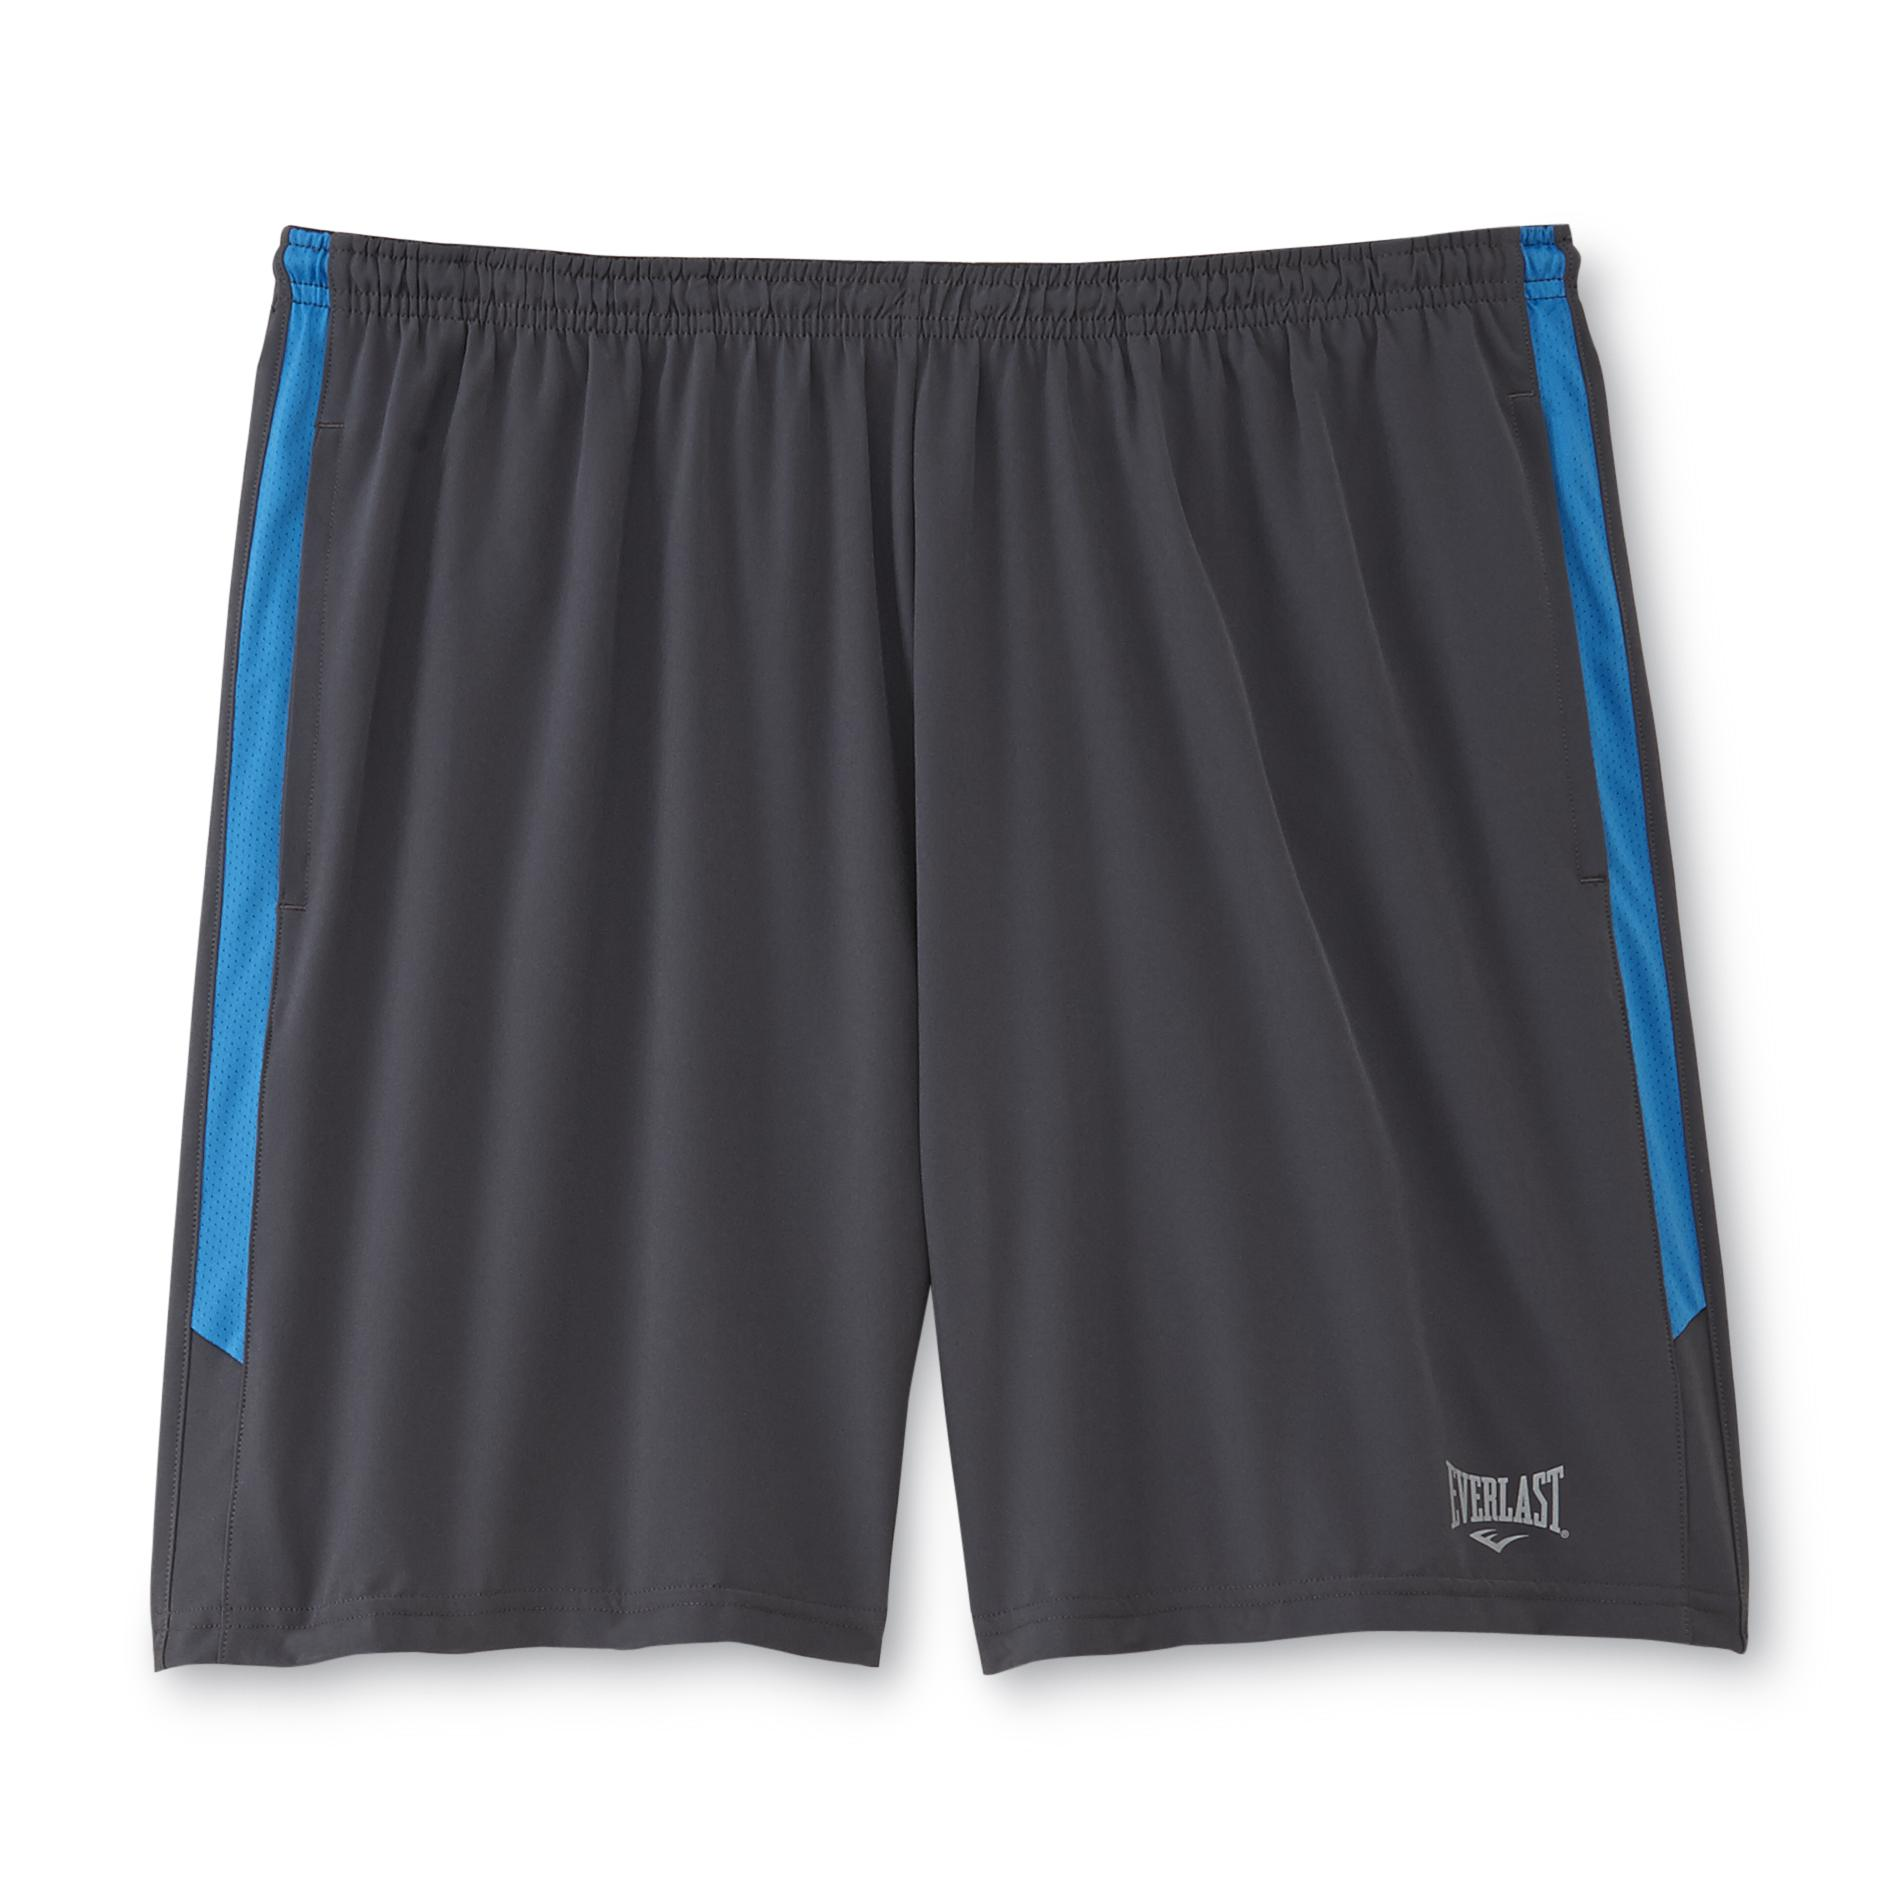 Young Men's Performance Shorts